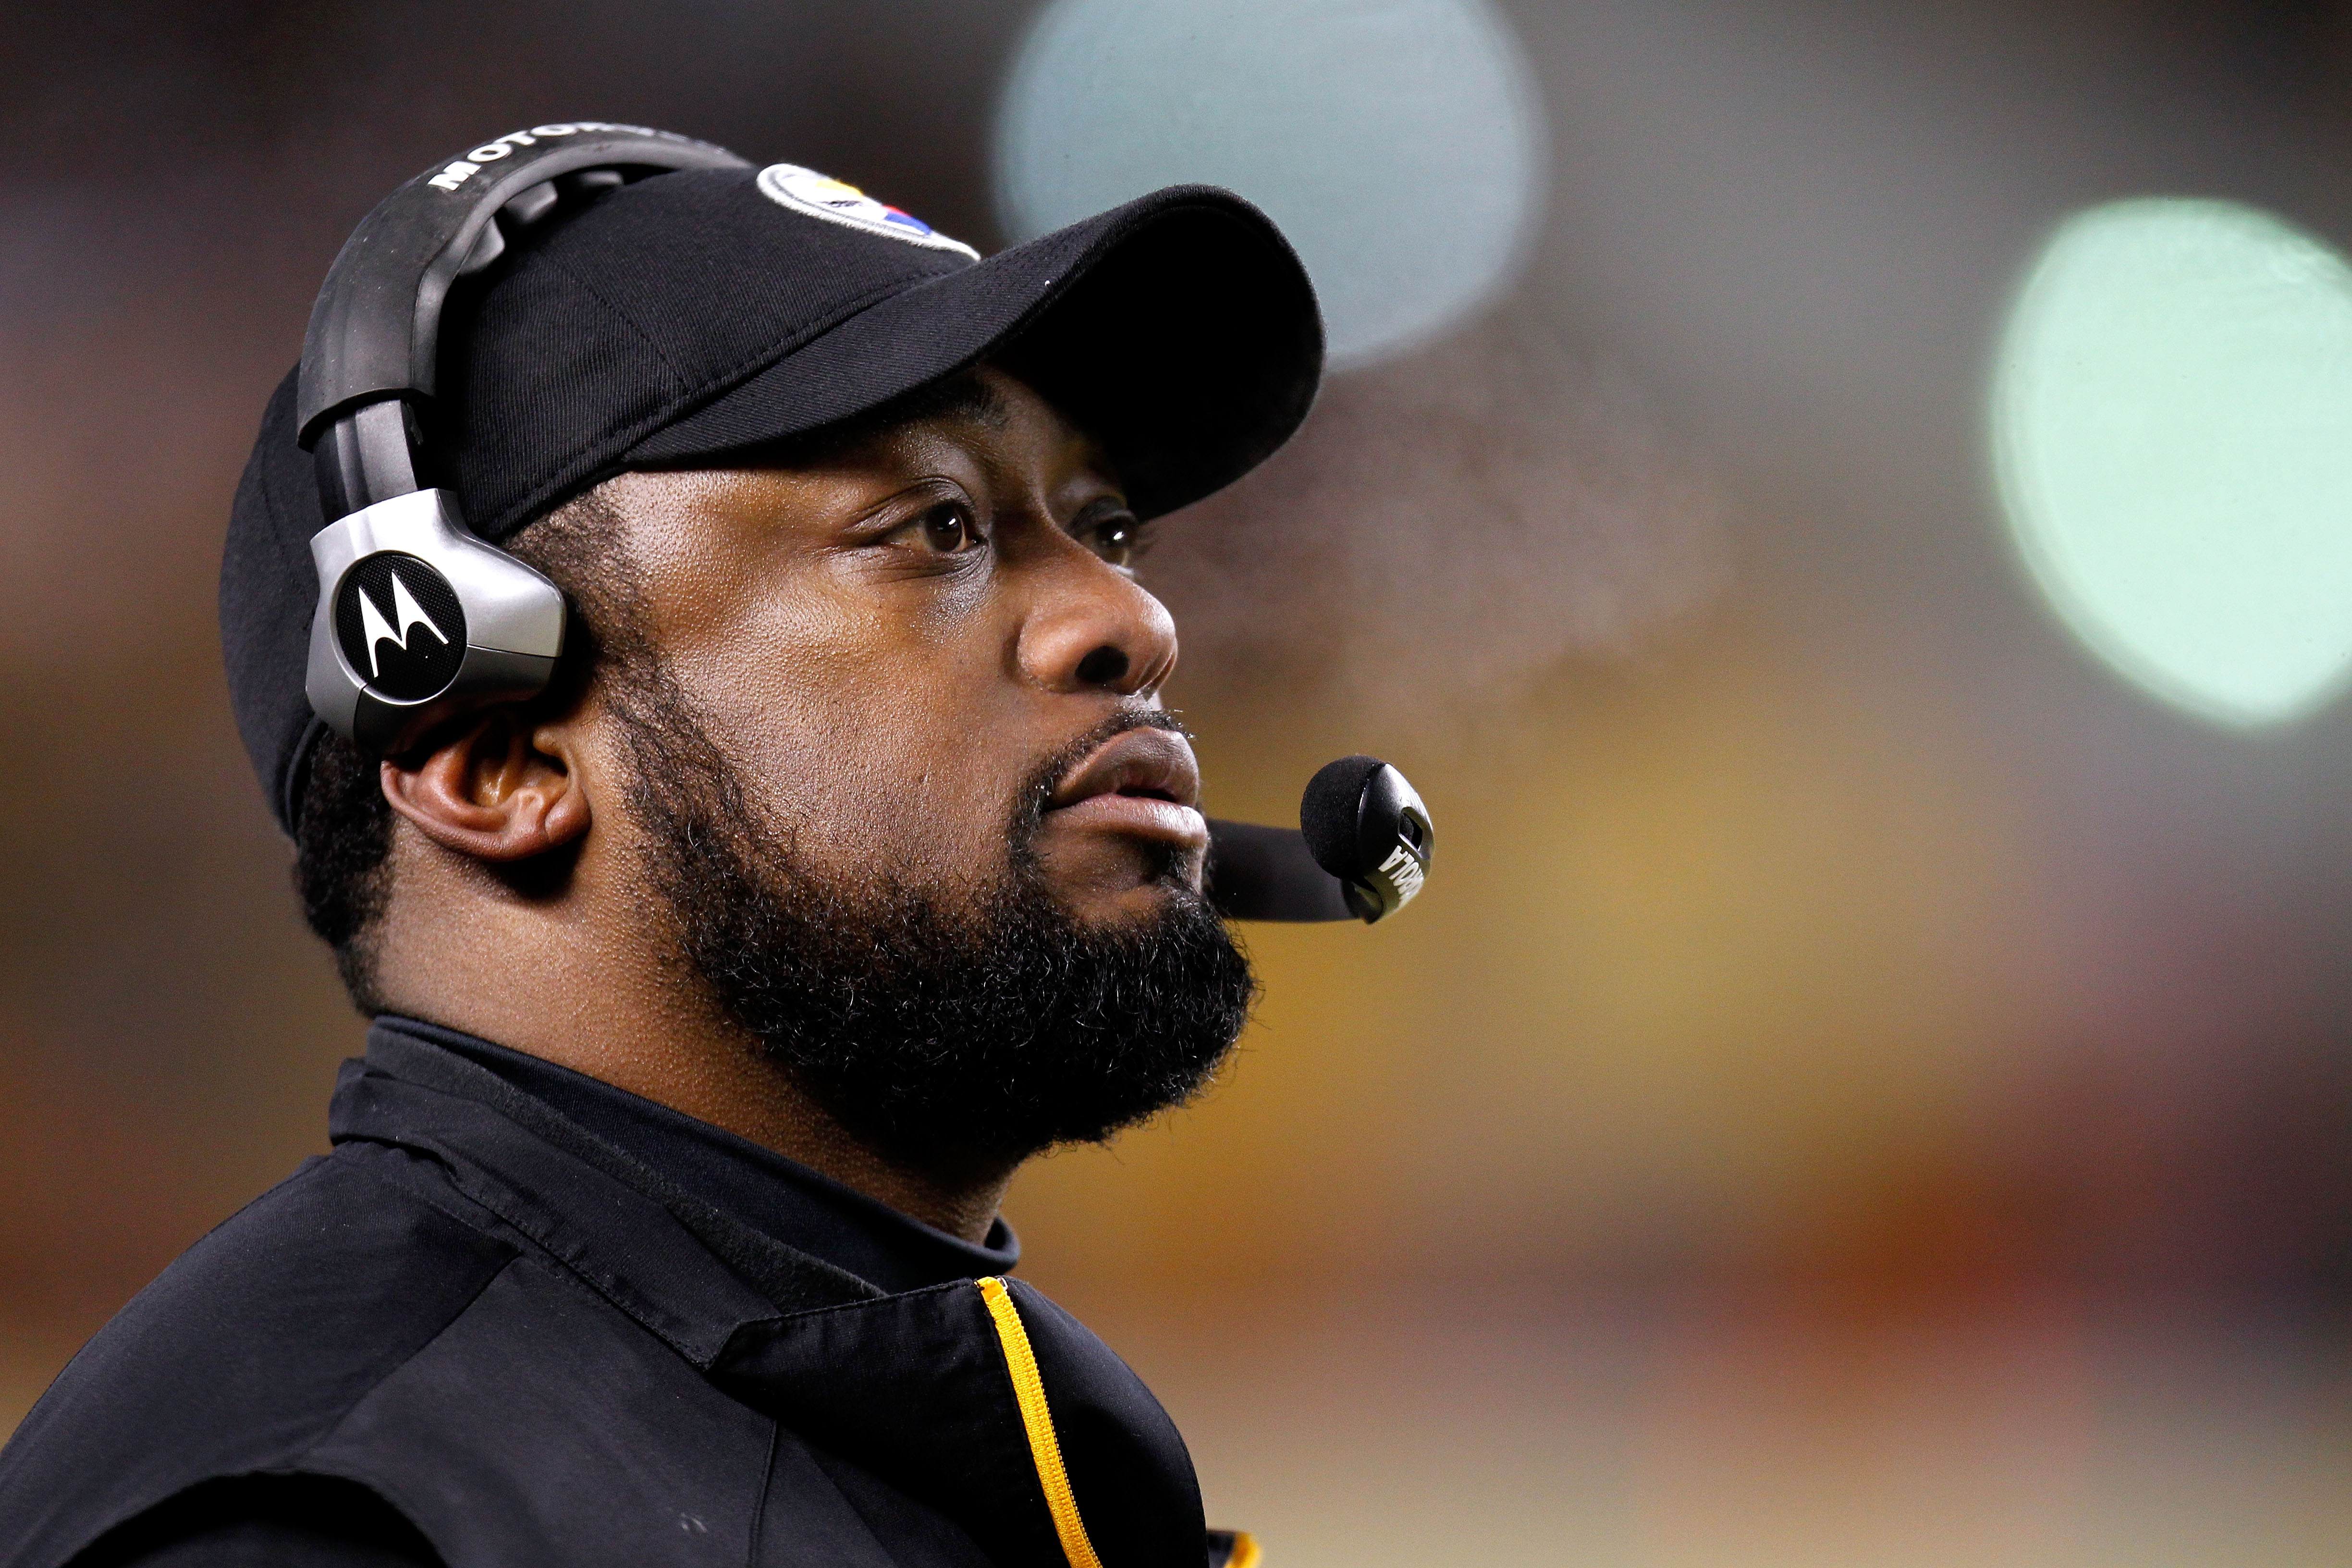 PITTSBURGH, PA - JANUARY 23:  Head coach Mike Tomlin of the Pittsburgh Steelers looks on against the New York Jets during the 2011 AFC Championship game at Heinz Field on January 23, 2011 in Pittsburgh, Pennsylvania.  (Photo by Gregory Shamus/Getty Images